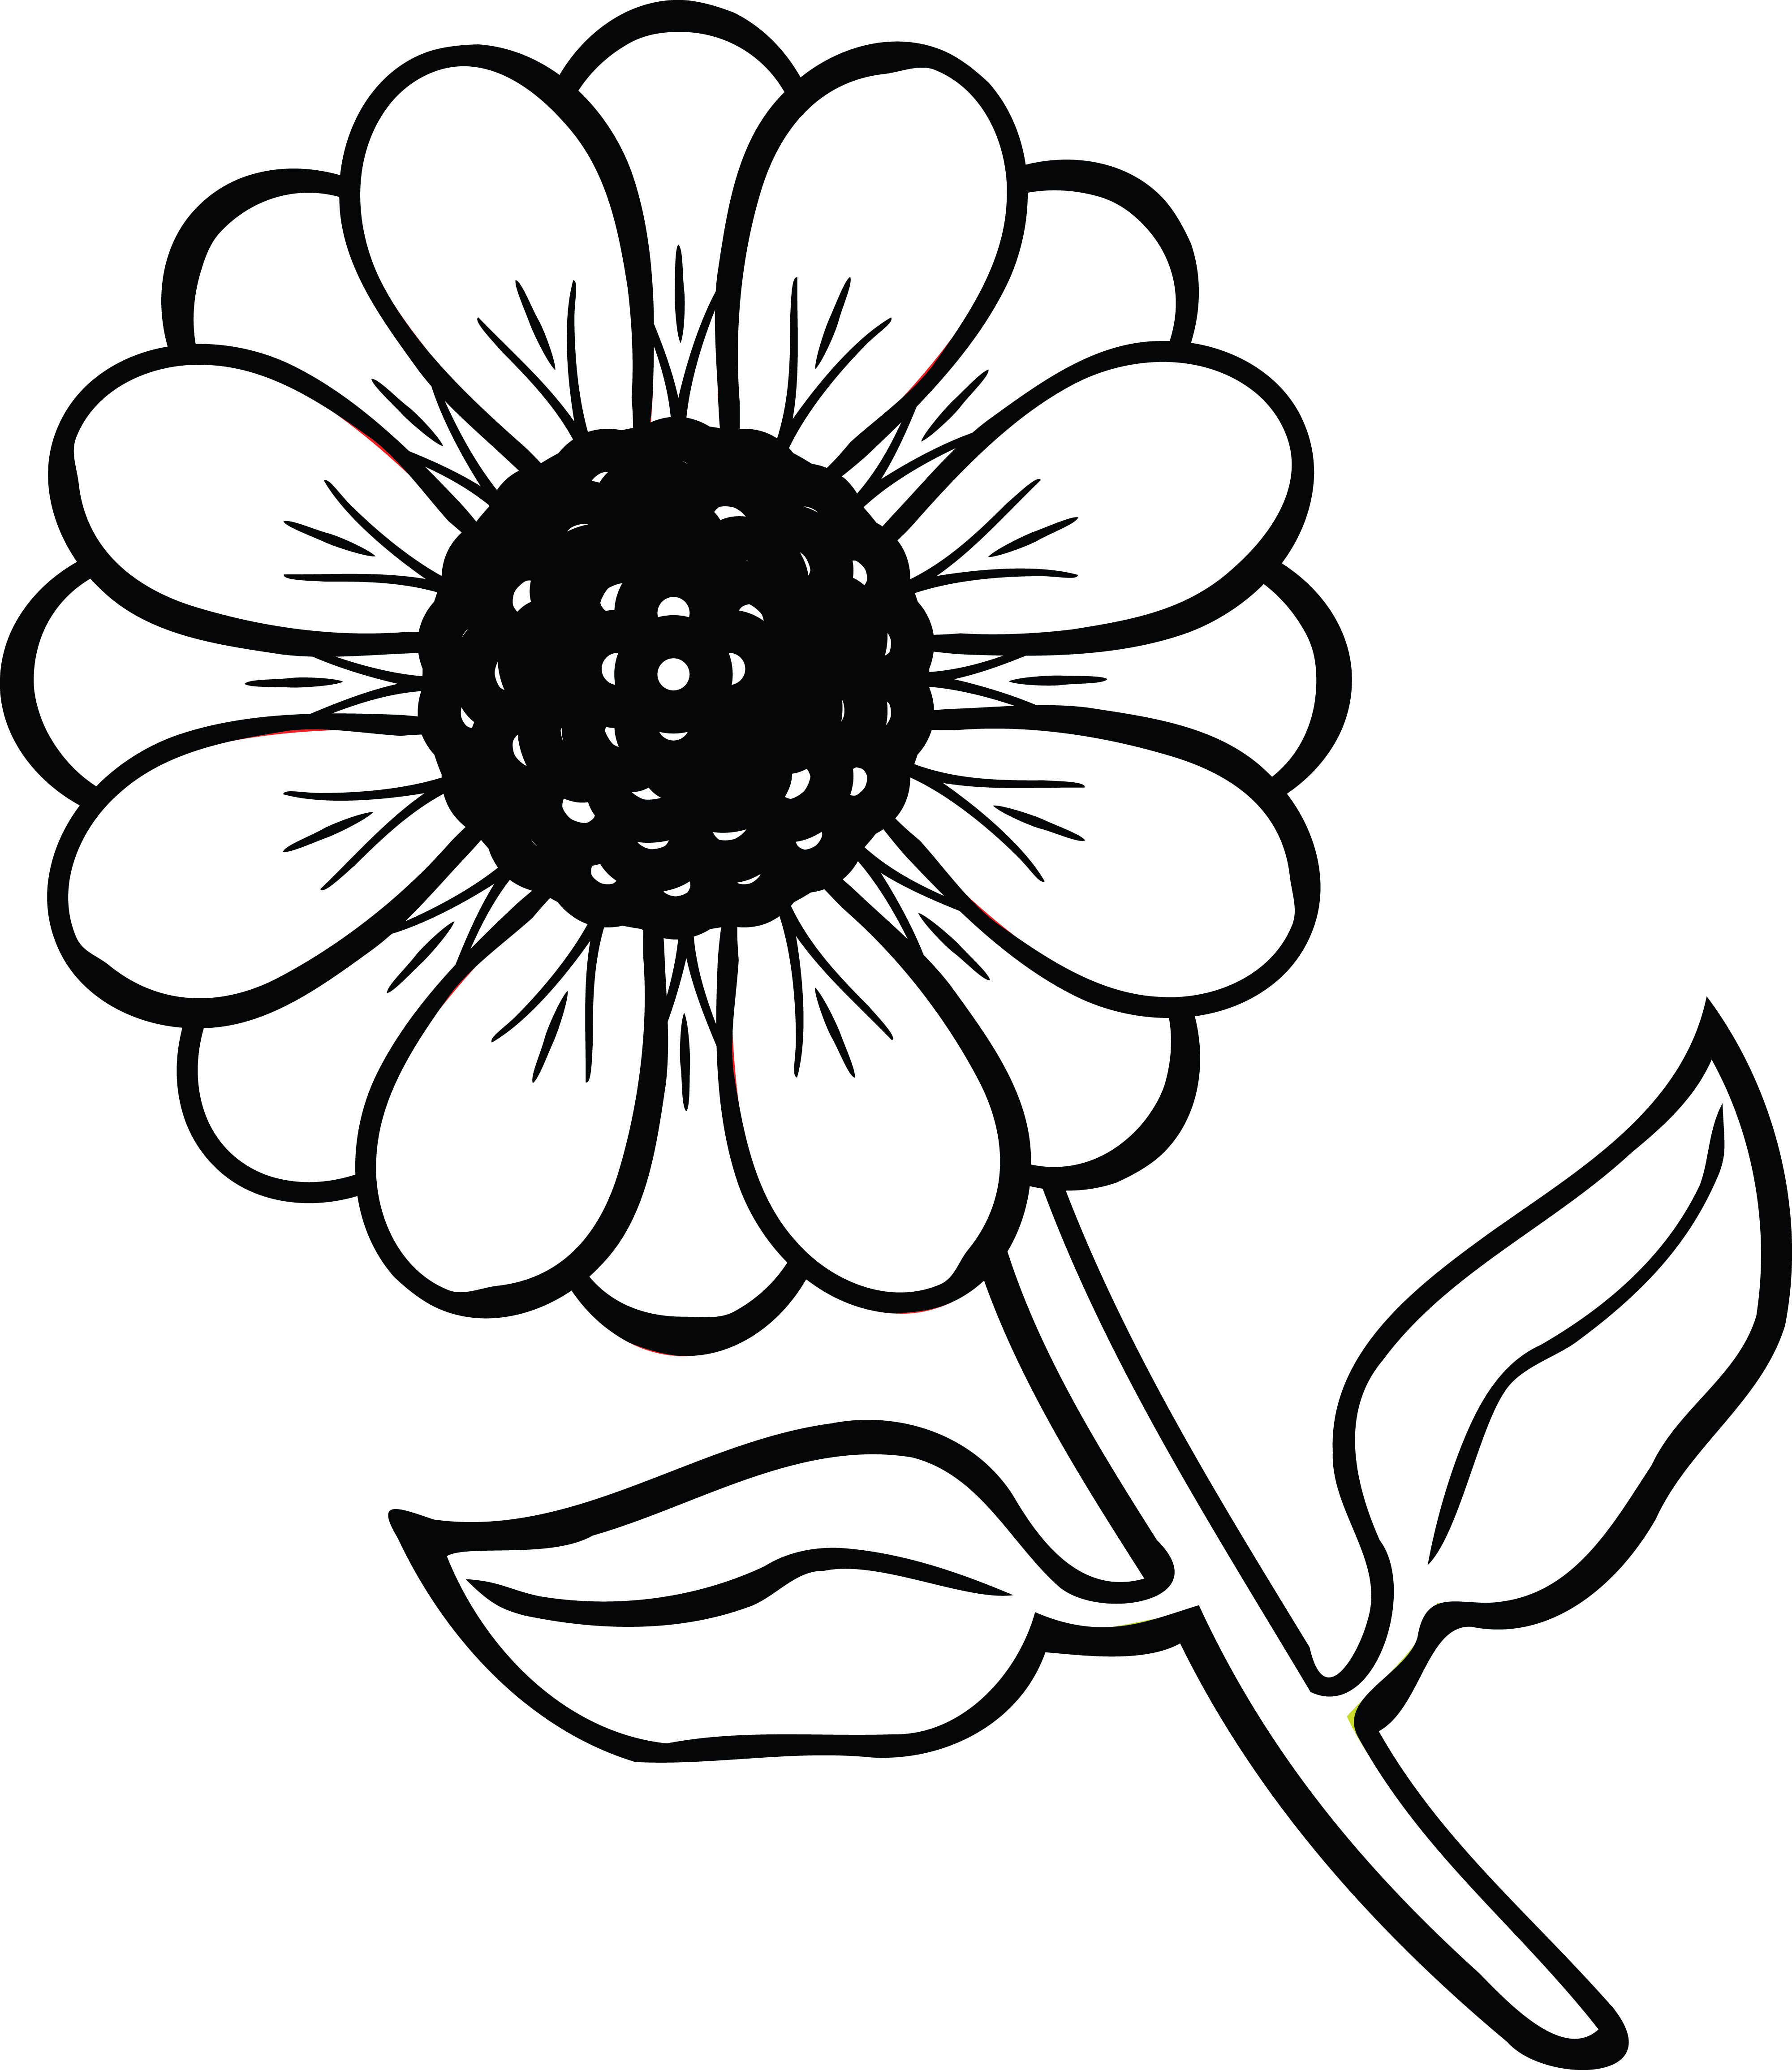 coloring flower clipart black and white black and white colorable sunflower free clip art flower white coloring clipart black and